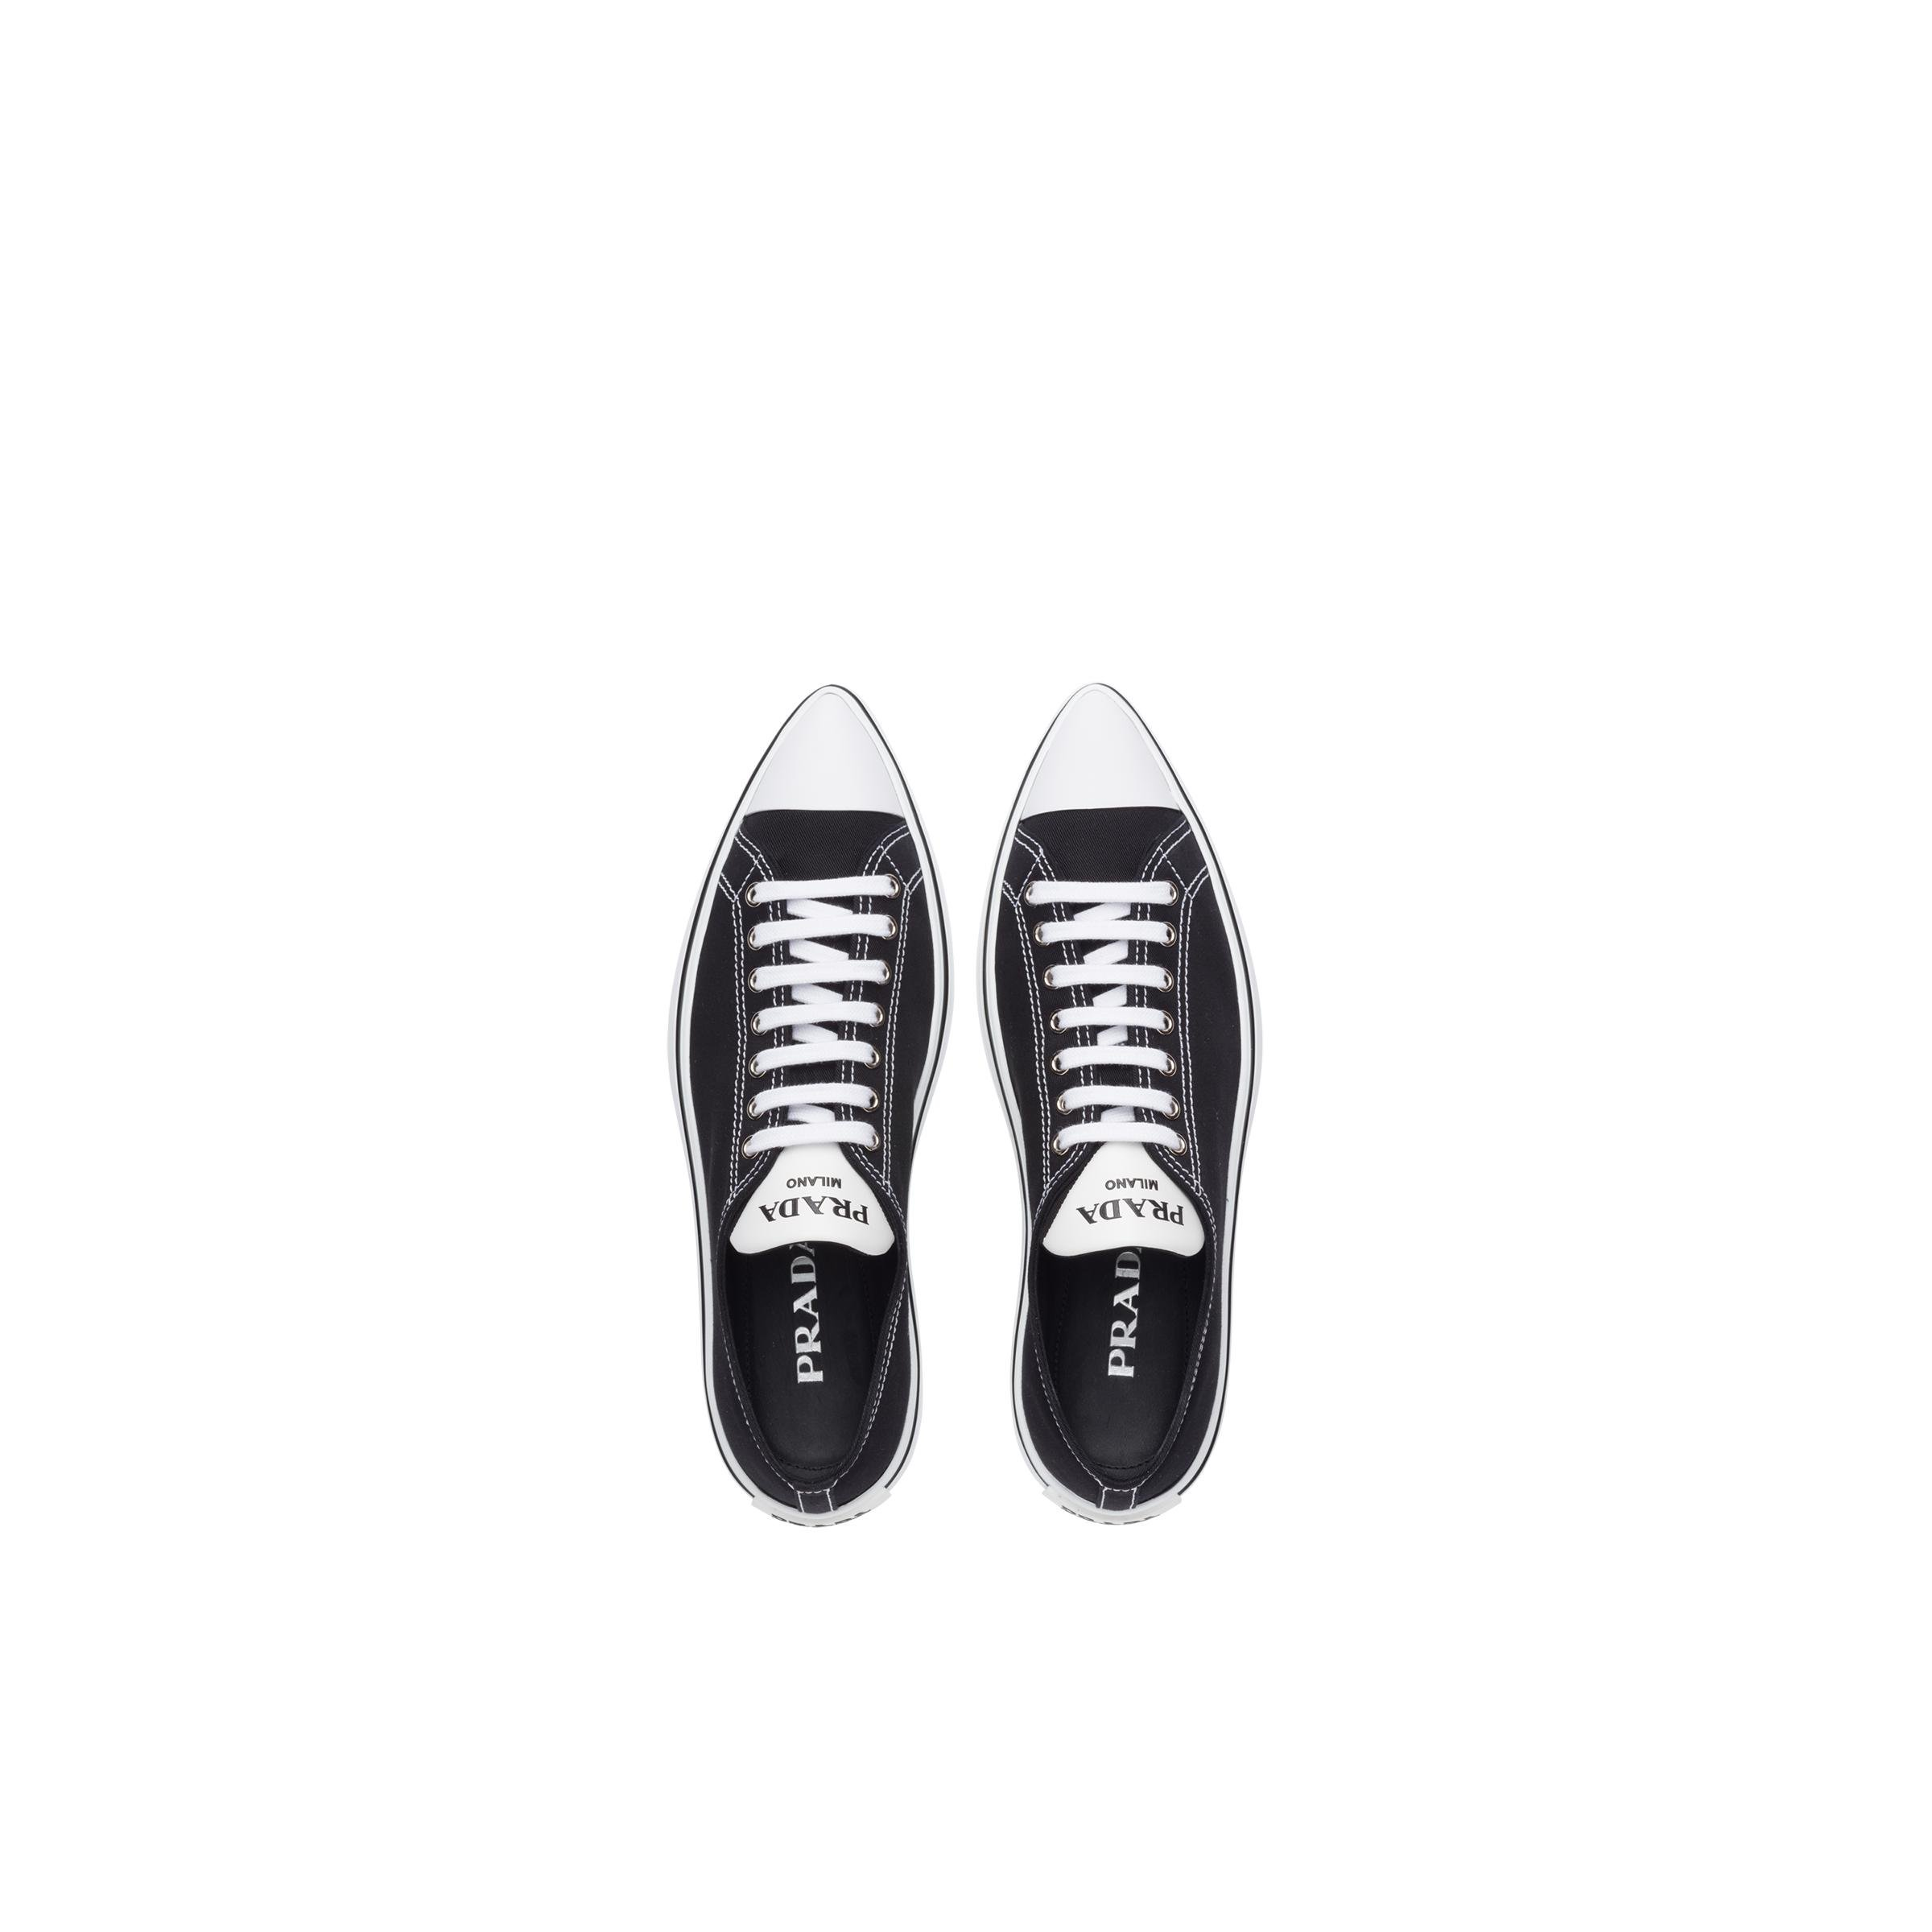 Synthesis Sneakers Women Black 1